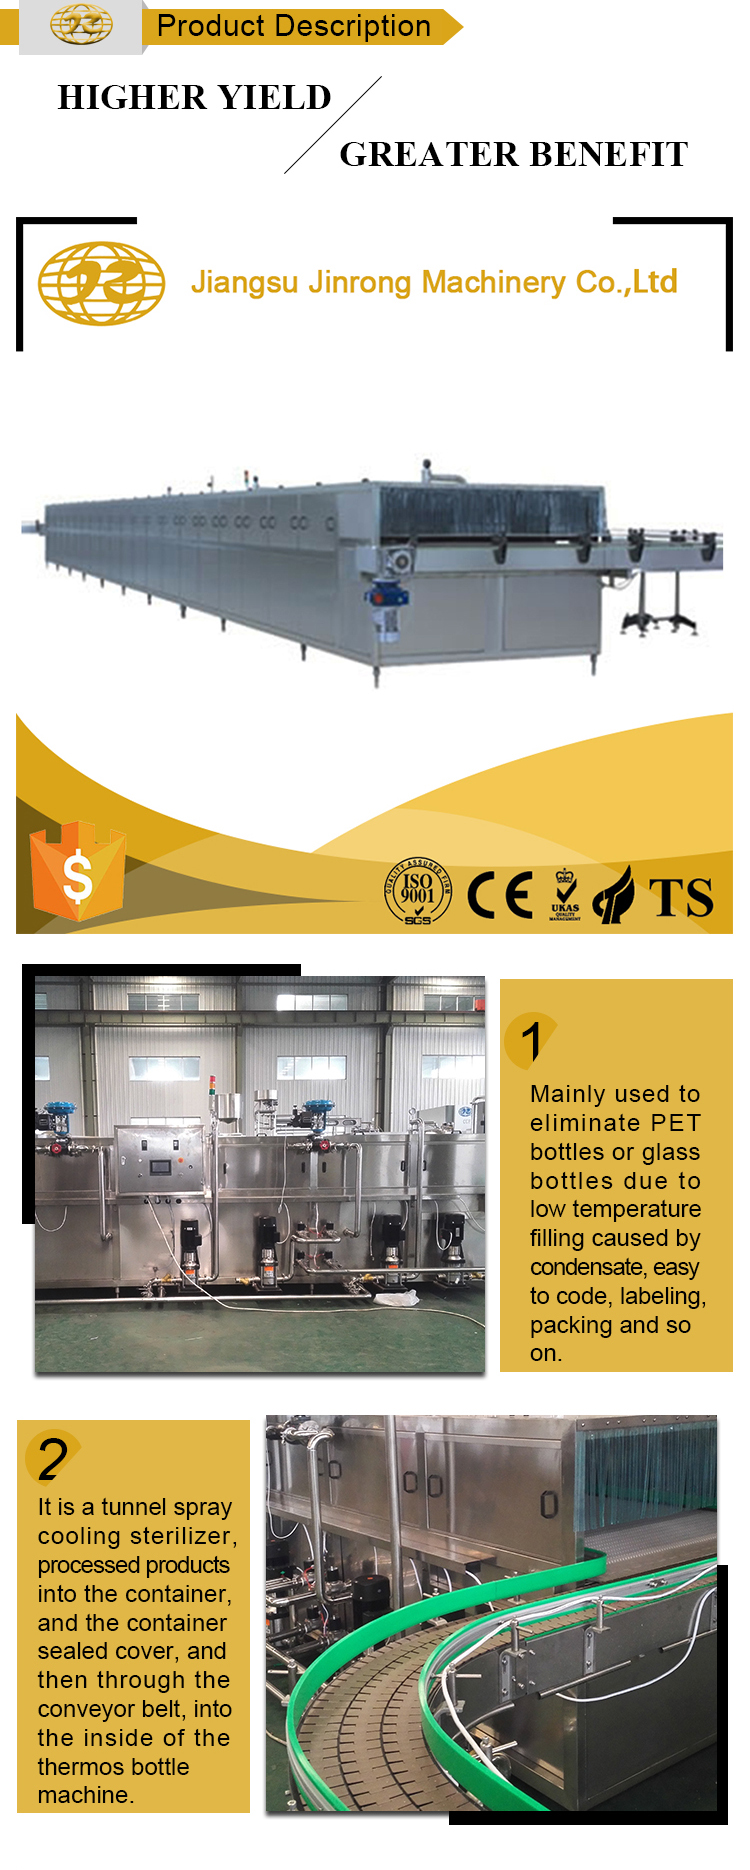 Automatic bottle warmer and cooler tunnel with shower spray 3 in 1 pasteurization machine